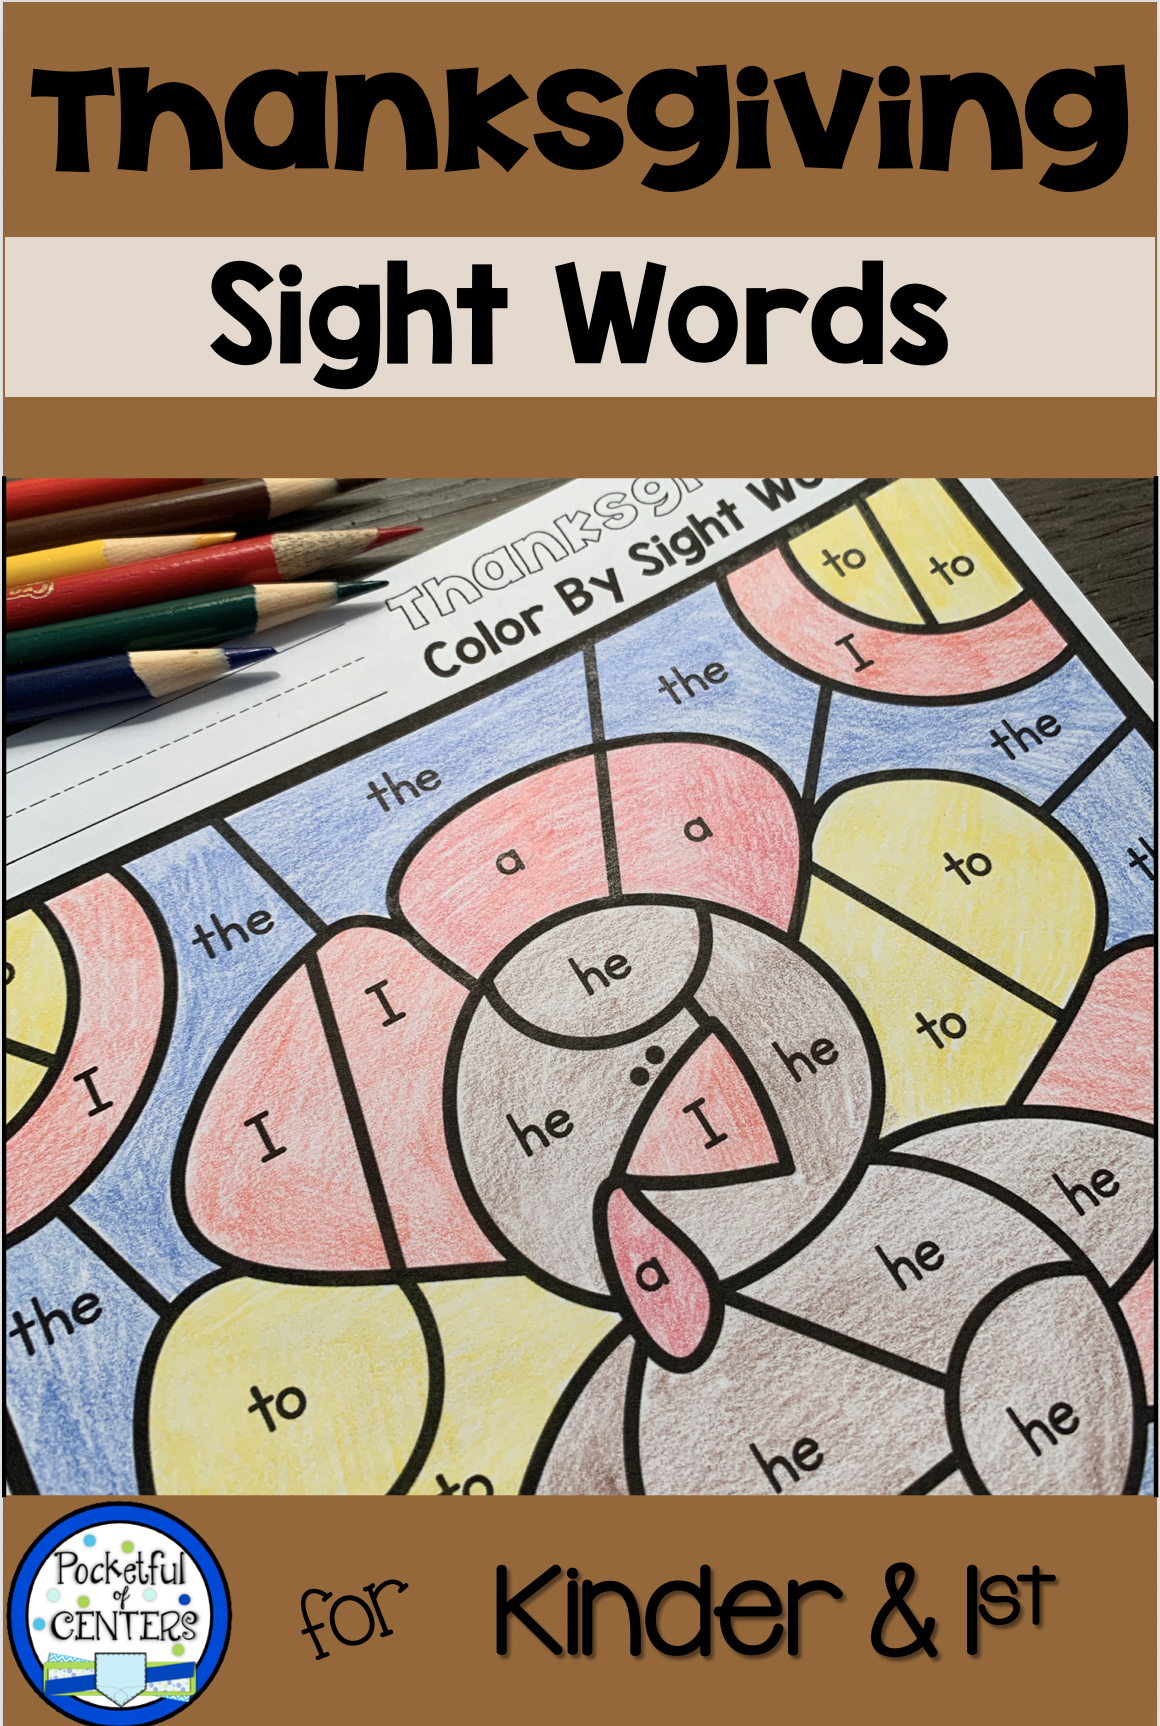 Thanksgiving Color By Code Sight Words